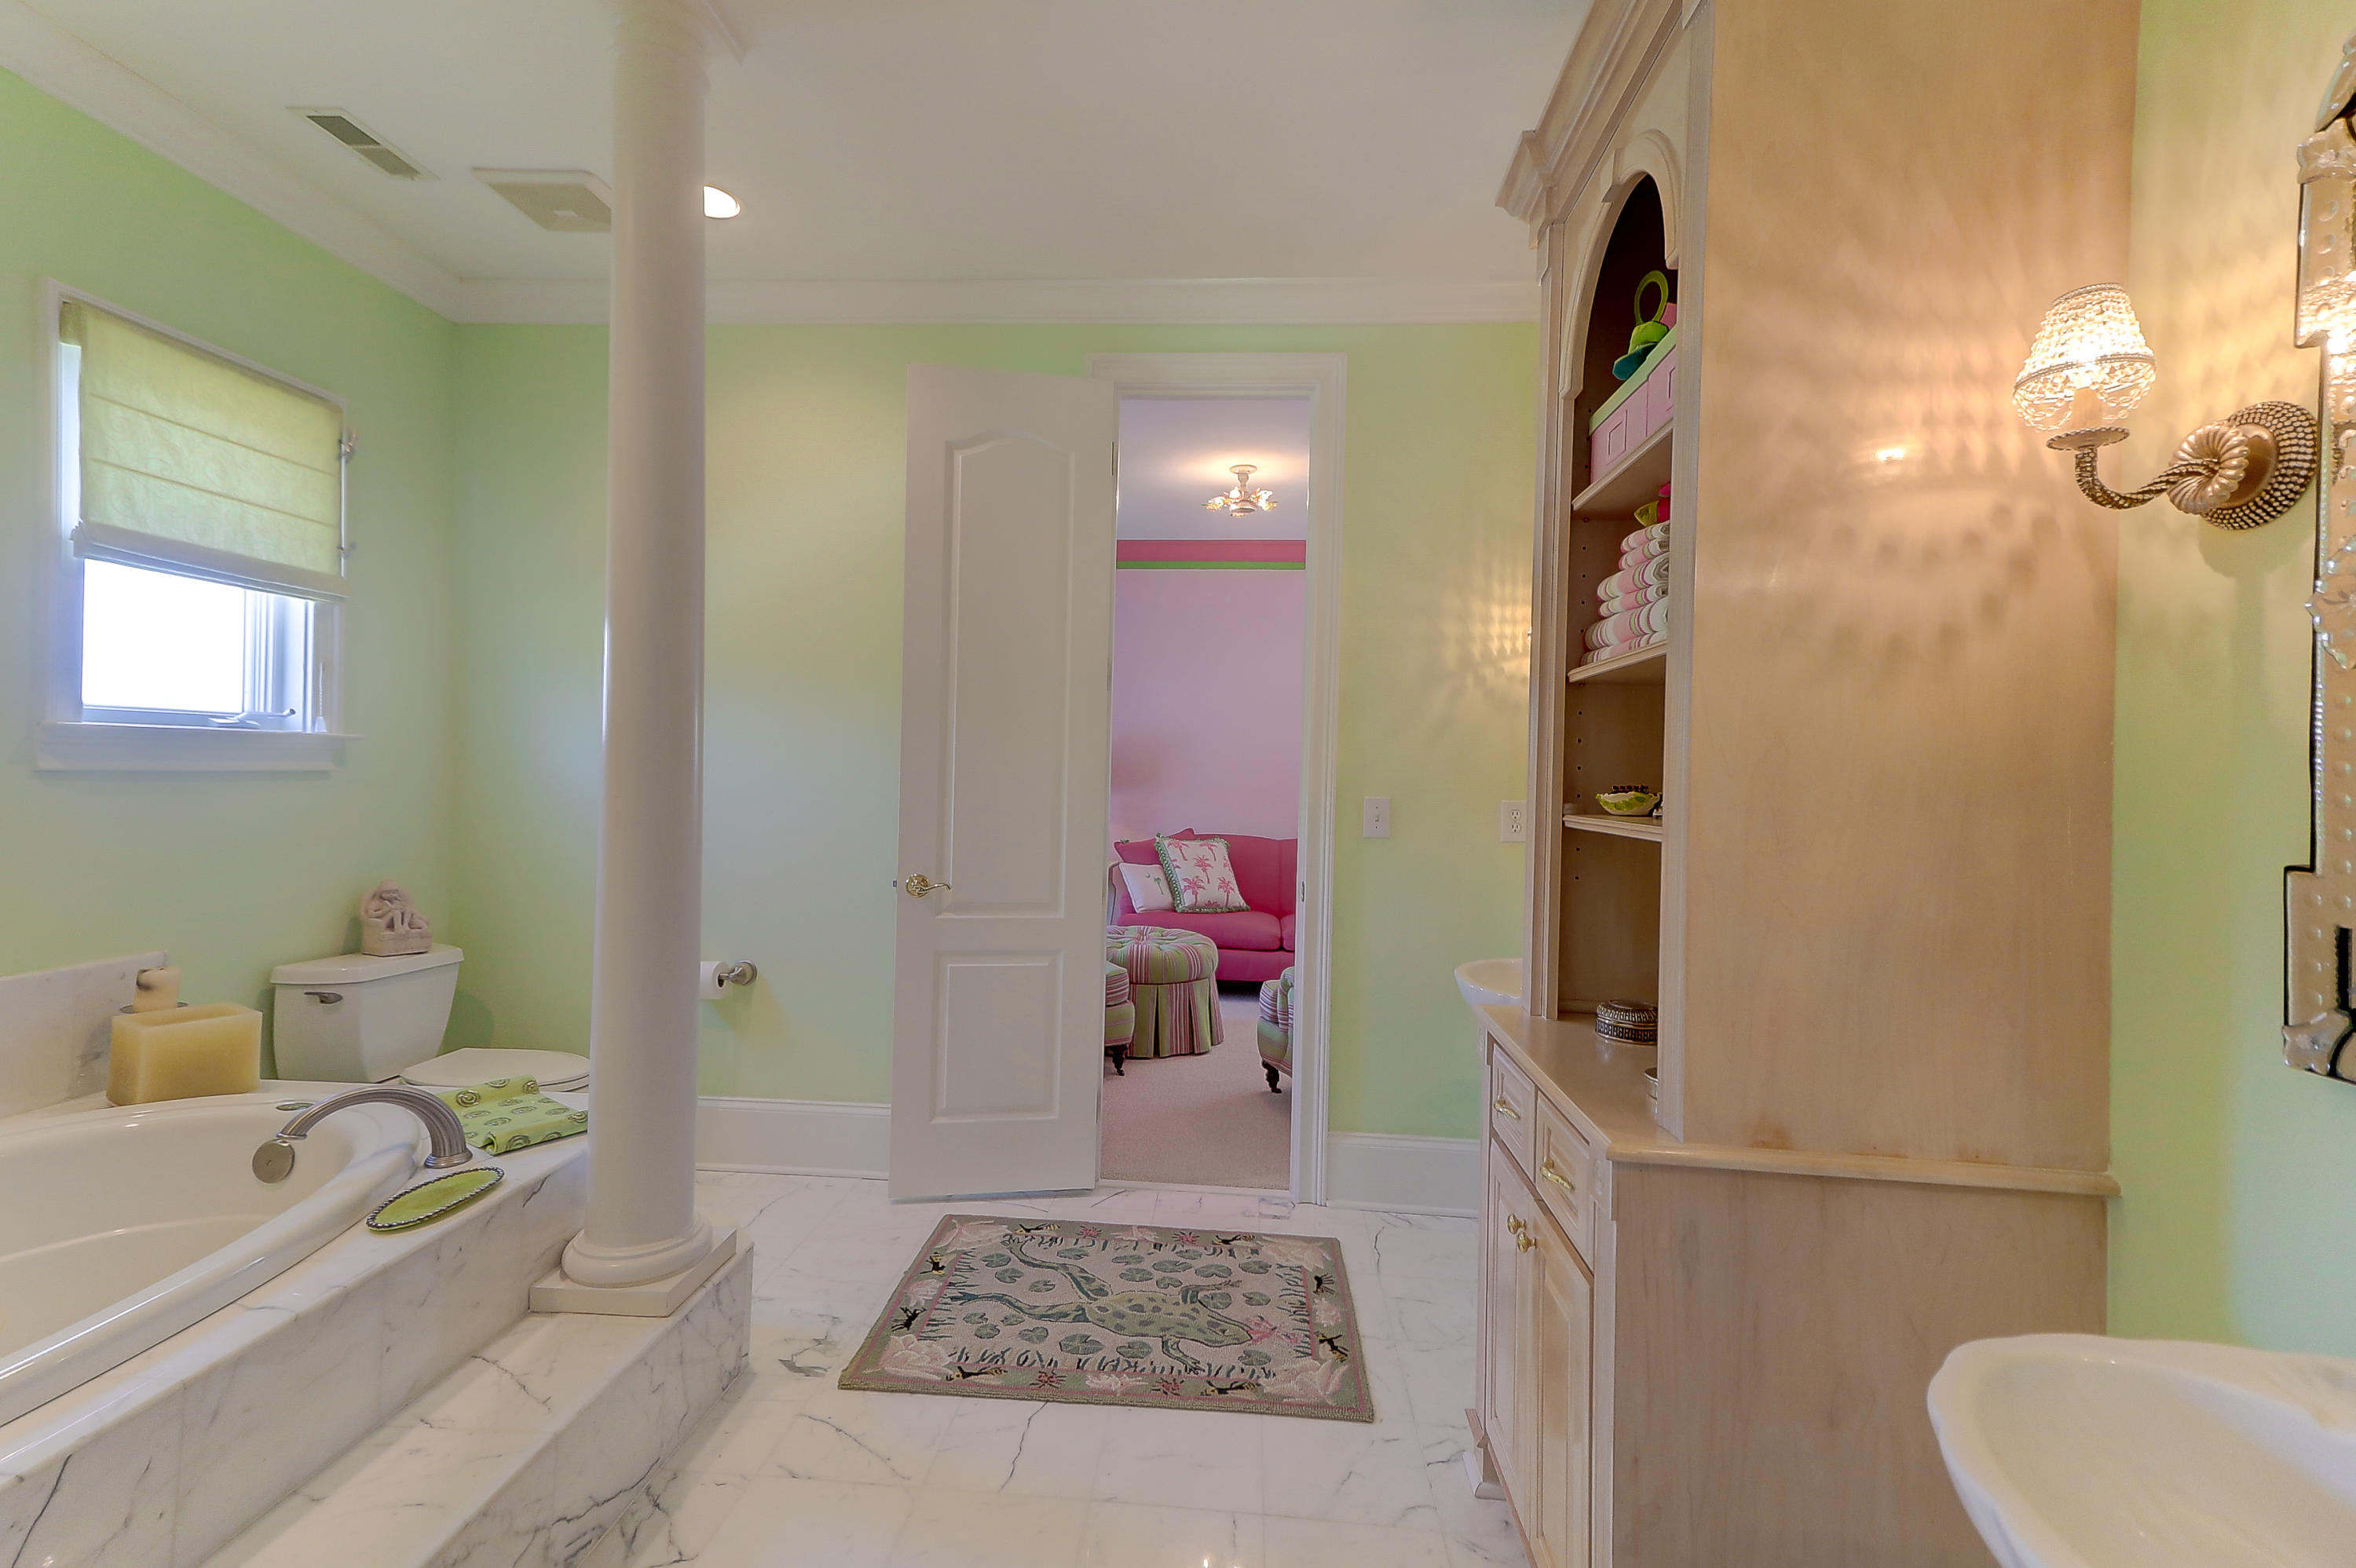 Dunes West Homes For Sale - 2019 Shell Ring, Mount Pleasant, SC - 46